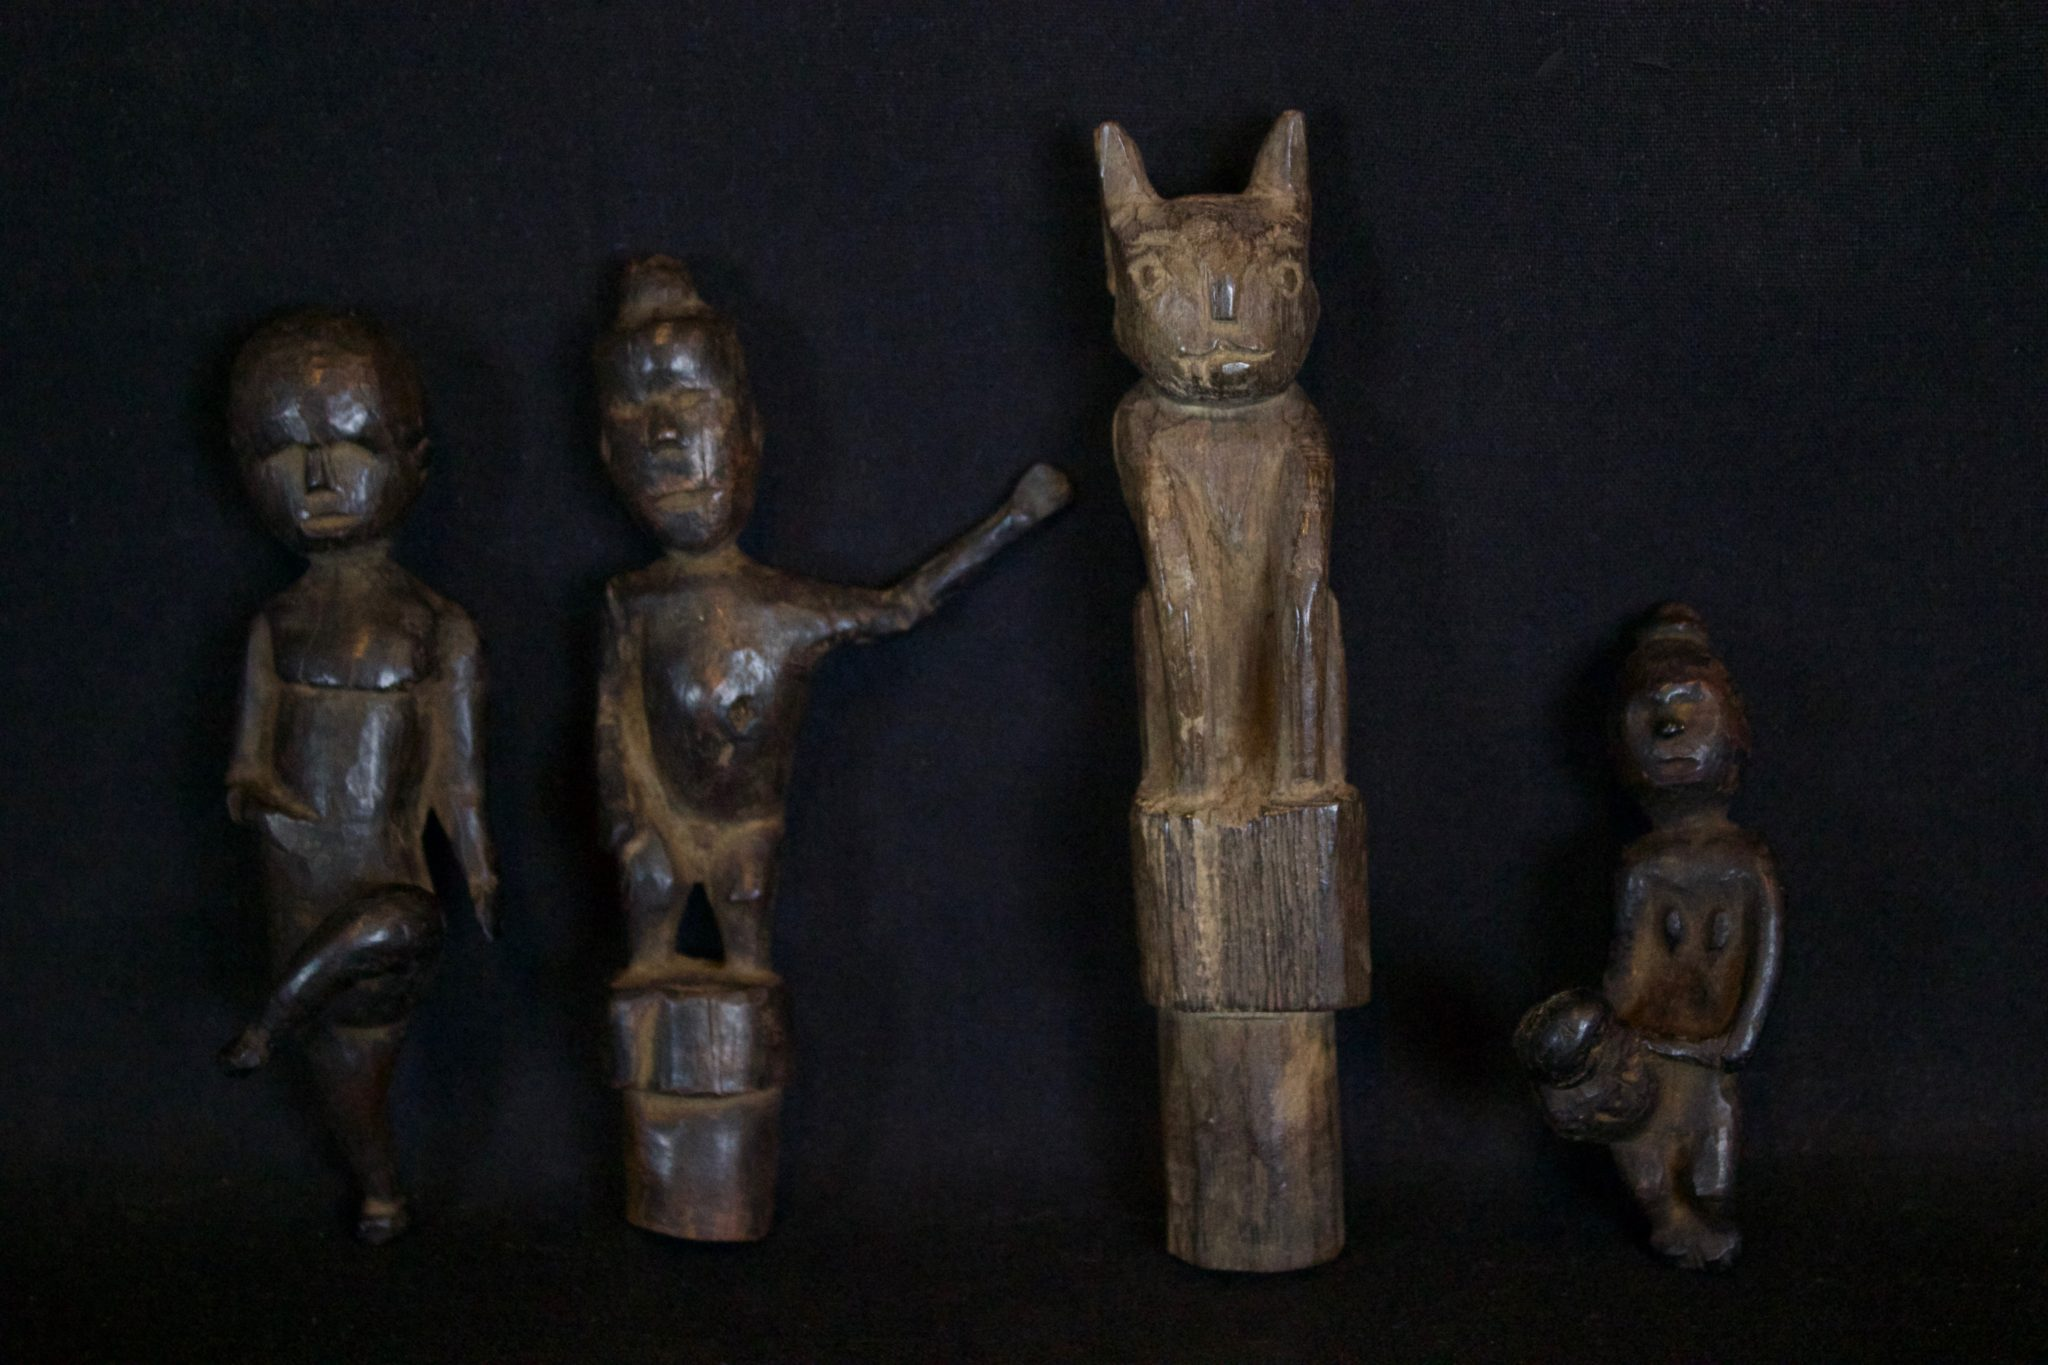 "Shaman's Amulet/Talisman Figures for Healing, Kalimantan, Borneo, Indonesia, Dayak tribe. Dimensions/Info Left to Right: (Early 20th c. Wood, 4 ¾"" x 1 ½"" x 1 ½"", $90.); (Late 19th to early 20th c, Wood, 5"" x 2 ½"" x 1 ½"", $90.); (Mid 20th c, Wood, Stopper for shaman's medicine container, 5 ¾"" x 1"" x 1 ¼"", $130.); ( Early 20th c. Wood, Used for healing a child, 3 ¼"" x 1"" x 1 ¾"", $85.)"